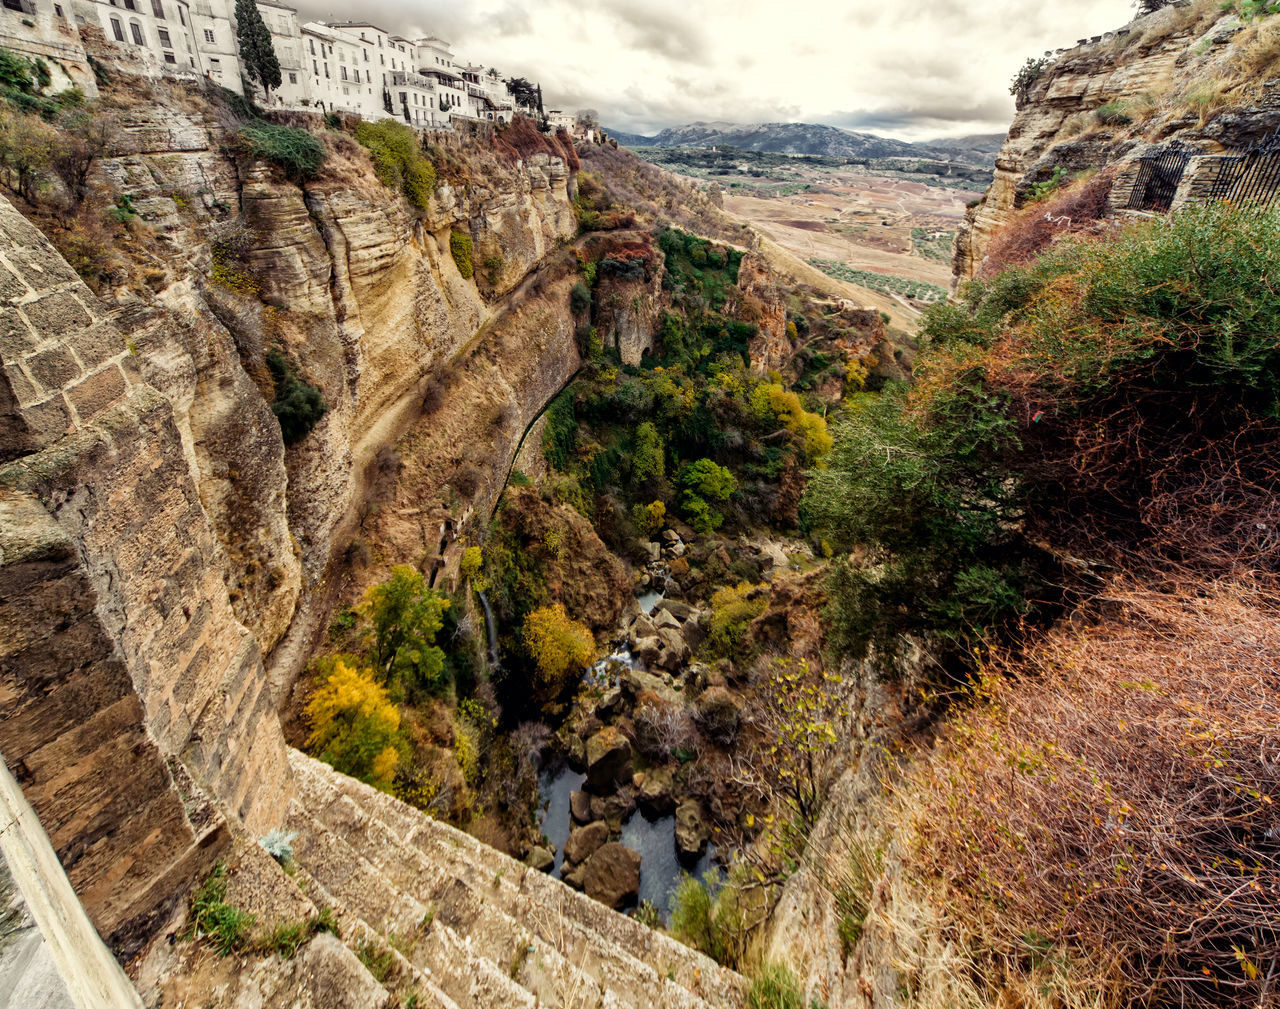 Amazing view of the Ronda canyon and the famous white village. Province of Malaga, Andalusia, Spain Amazing Nature Ancient Architecture Andalusia Canyon Cliffs Costa Del Sol Europe Famous Place Gorge Guadalevin History Landmark Landscape Malaga Nature Outdoors Picturesque Village Rocky Mountains Ronda Spain Scenery SPAIN Stunning Scenery Town Travel Destinations Village